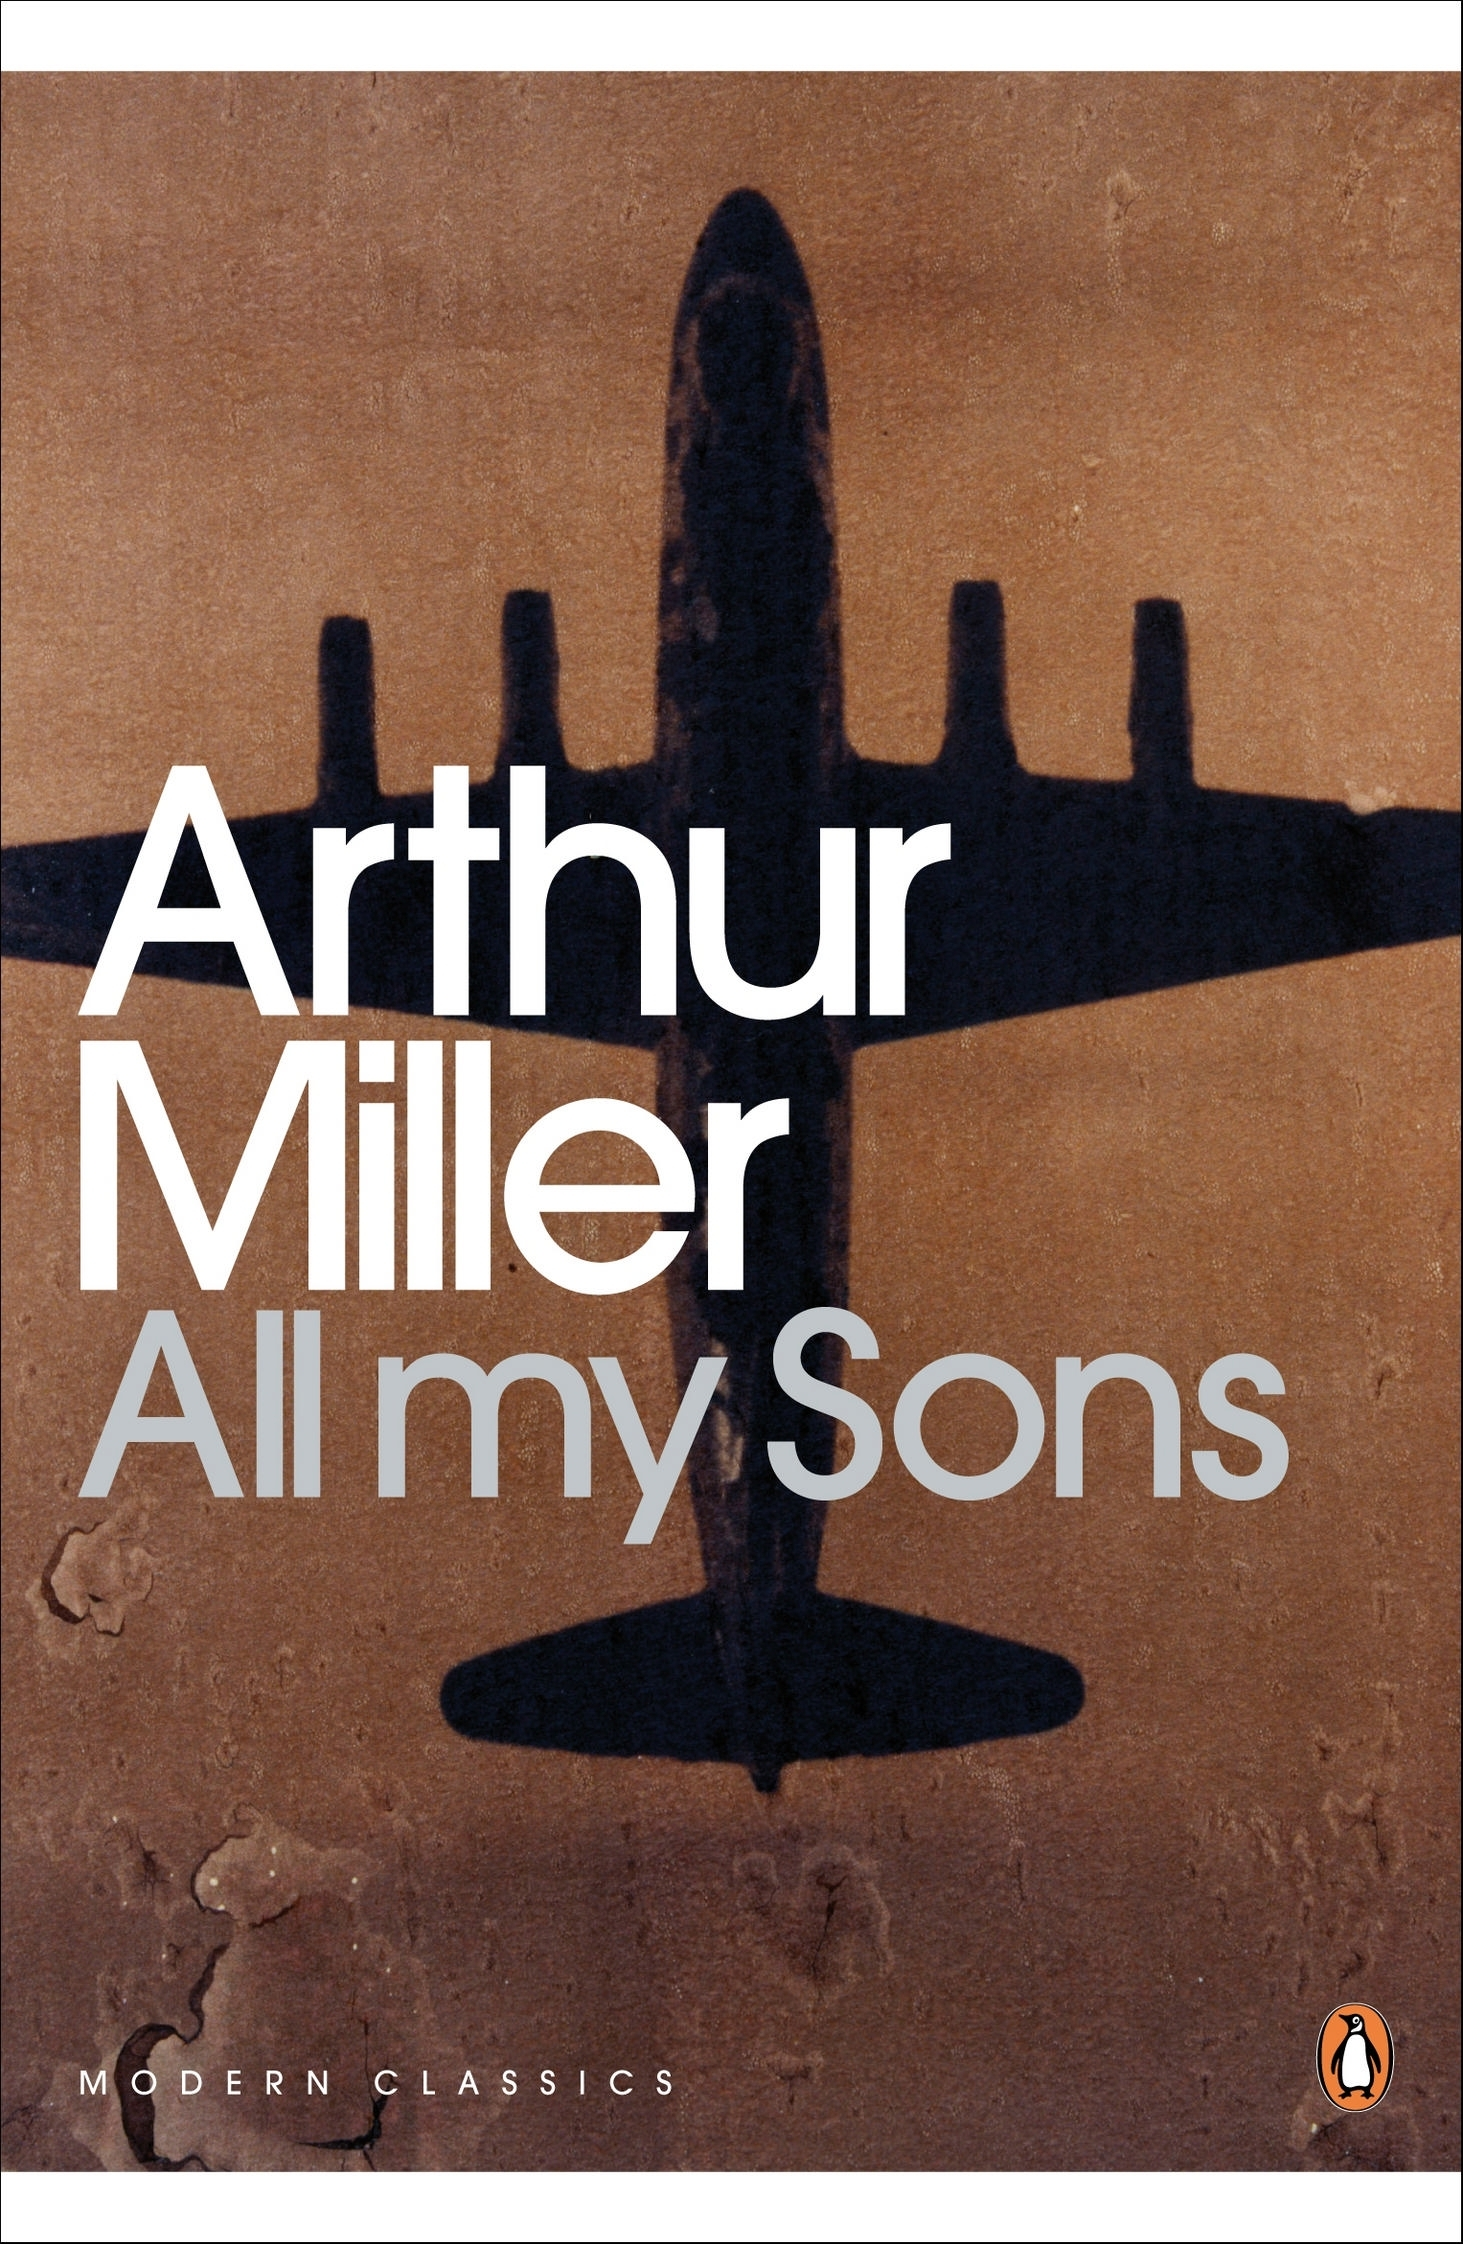 character analysis of joe keller in arthur millers novel all my sons